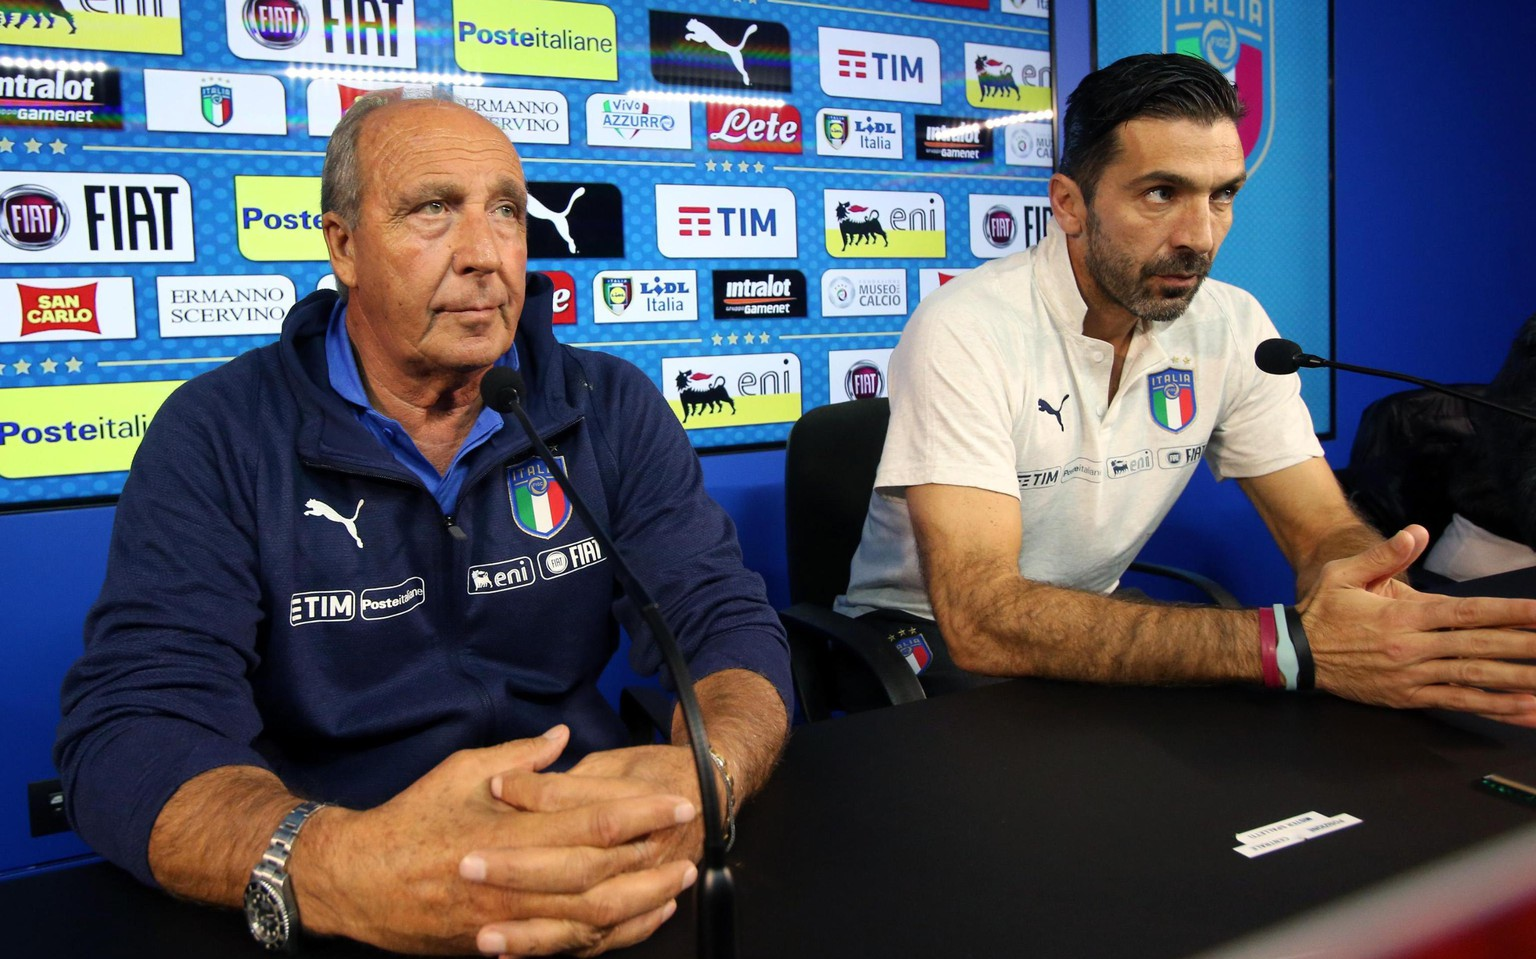 epa06324513 Italy's coach Gian Piero Ventura (L) and team captain Gianluigi Buffon attend a press conference in Appiano Gentile, Italy, 12  November 2017. Italy faces Sweden on 13 November 2017 in a FIFA World Cup 2018 play-off second leg soccer match.  EPA/MATTEO BAZZI